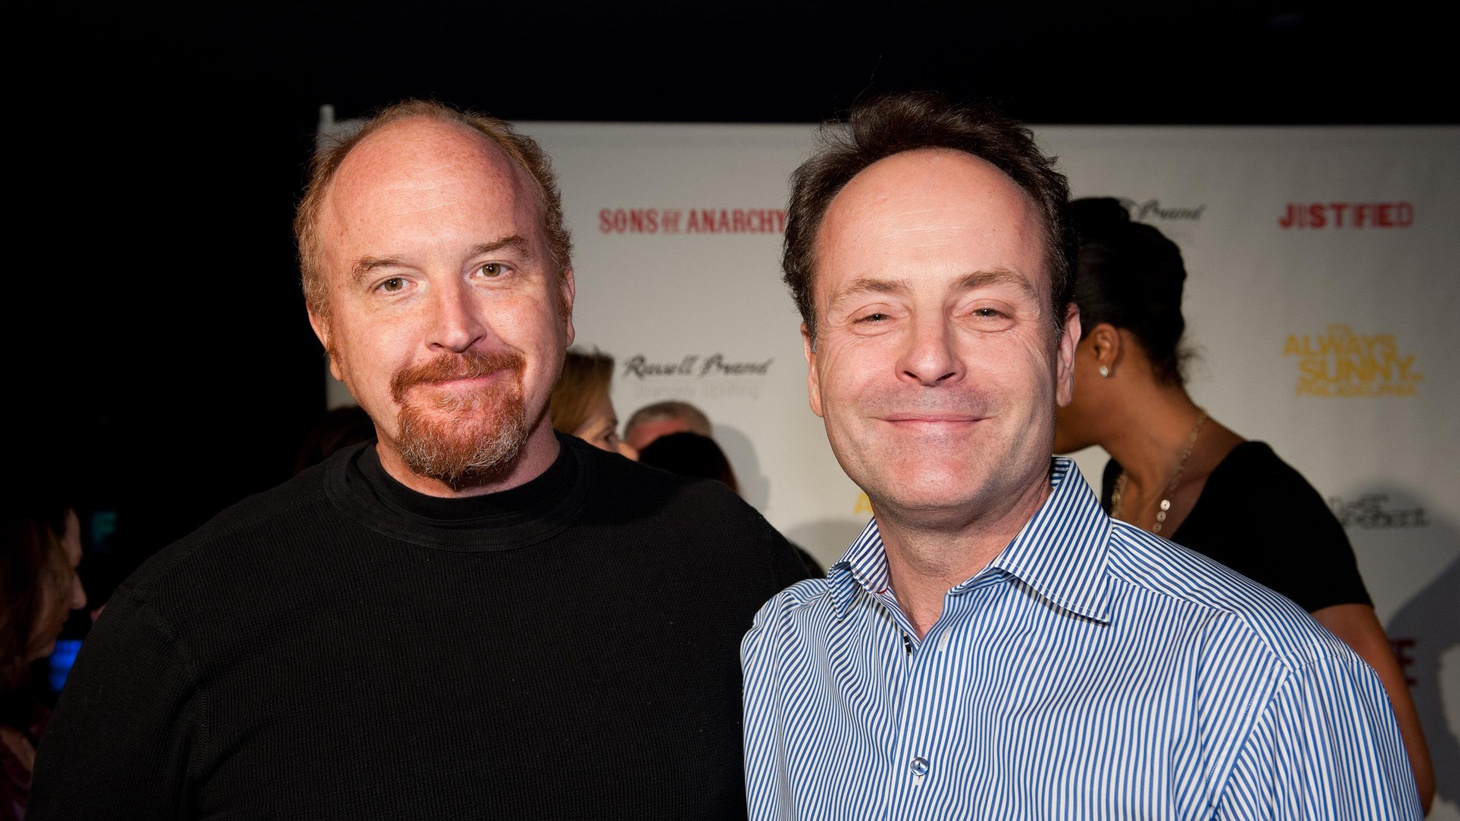 FX President John Landgraf talks with Kim Masters about the unconventional deals he made with Louis CK and Charlie Sheen.